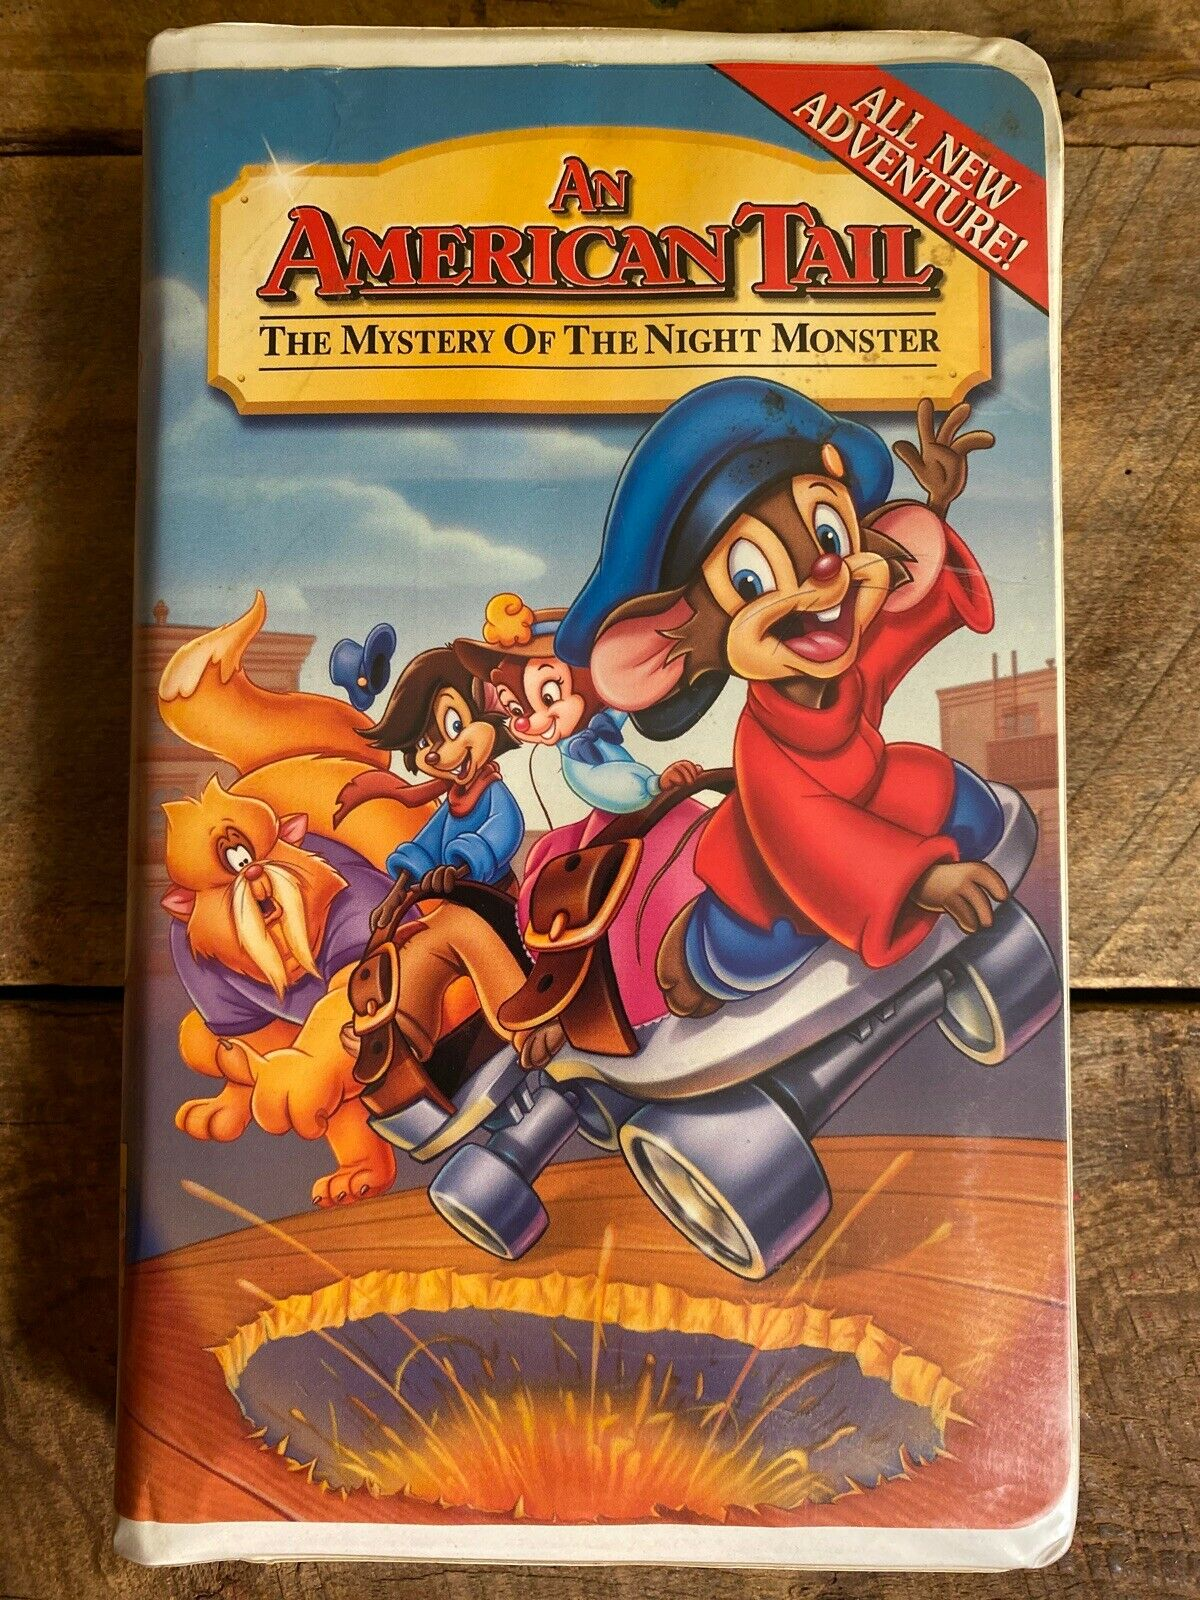 An American Tail: The Mystery of the Night Monster (2000 VHS)